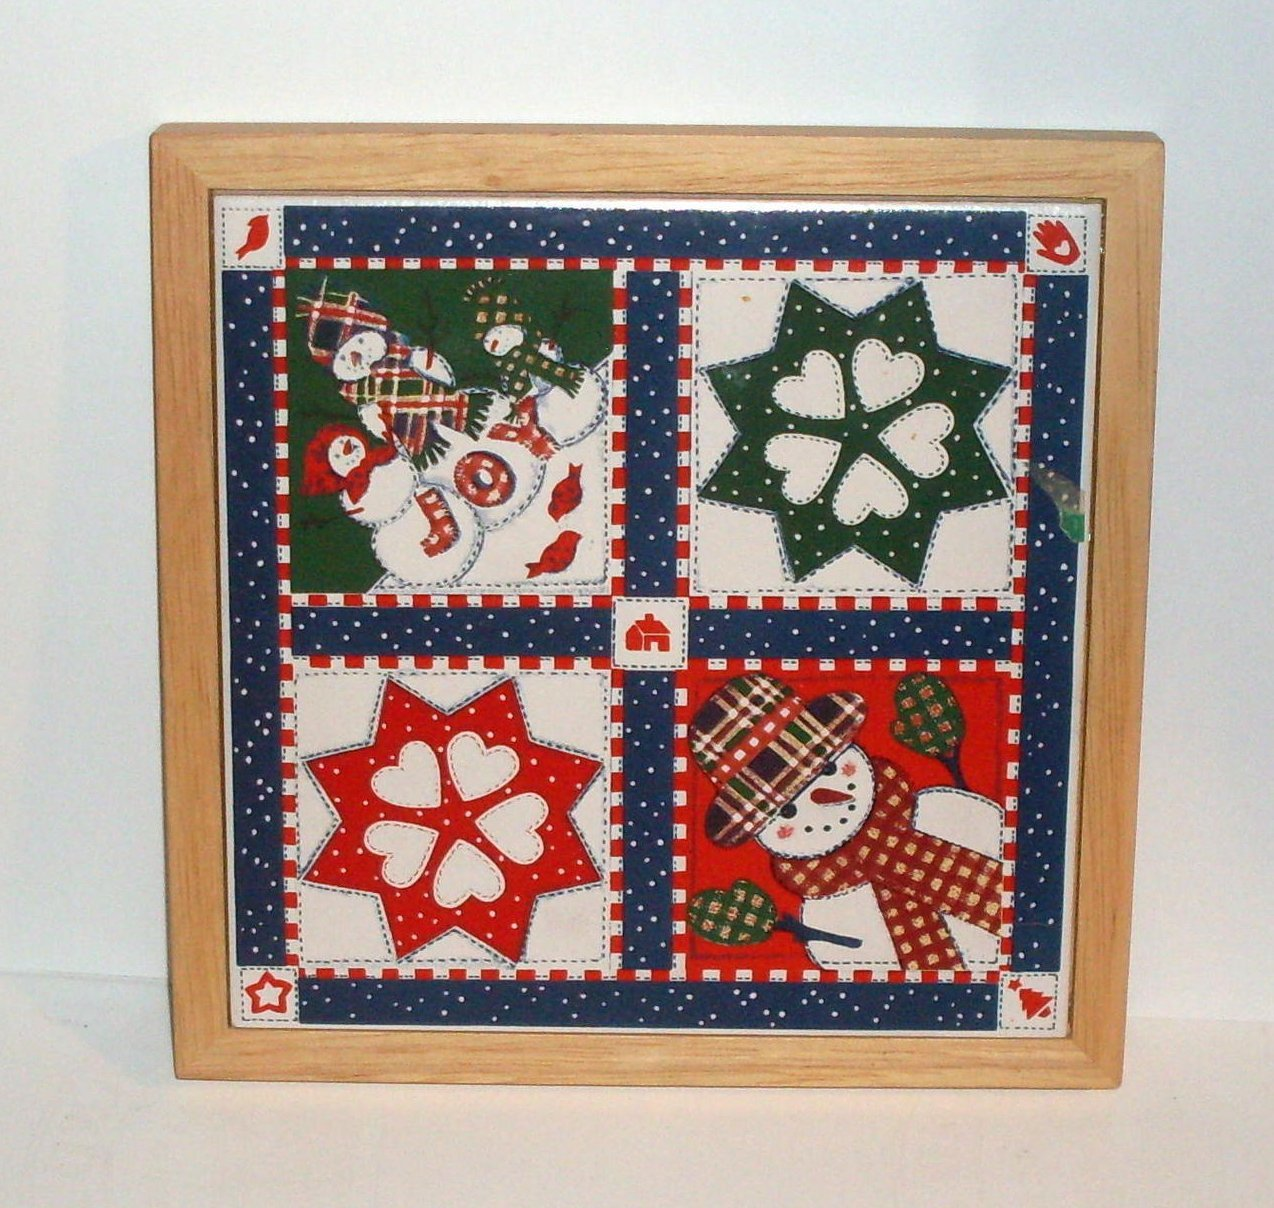 '.Holiday Ceramic Tile Trivet.'